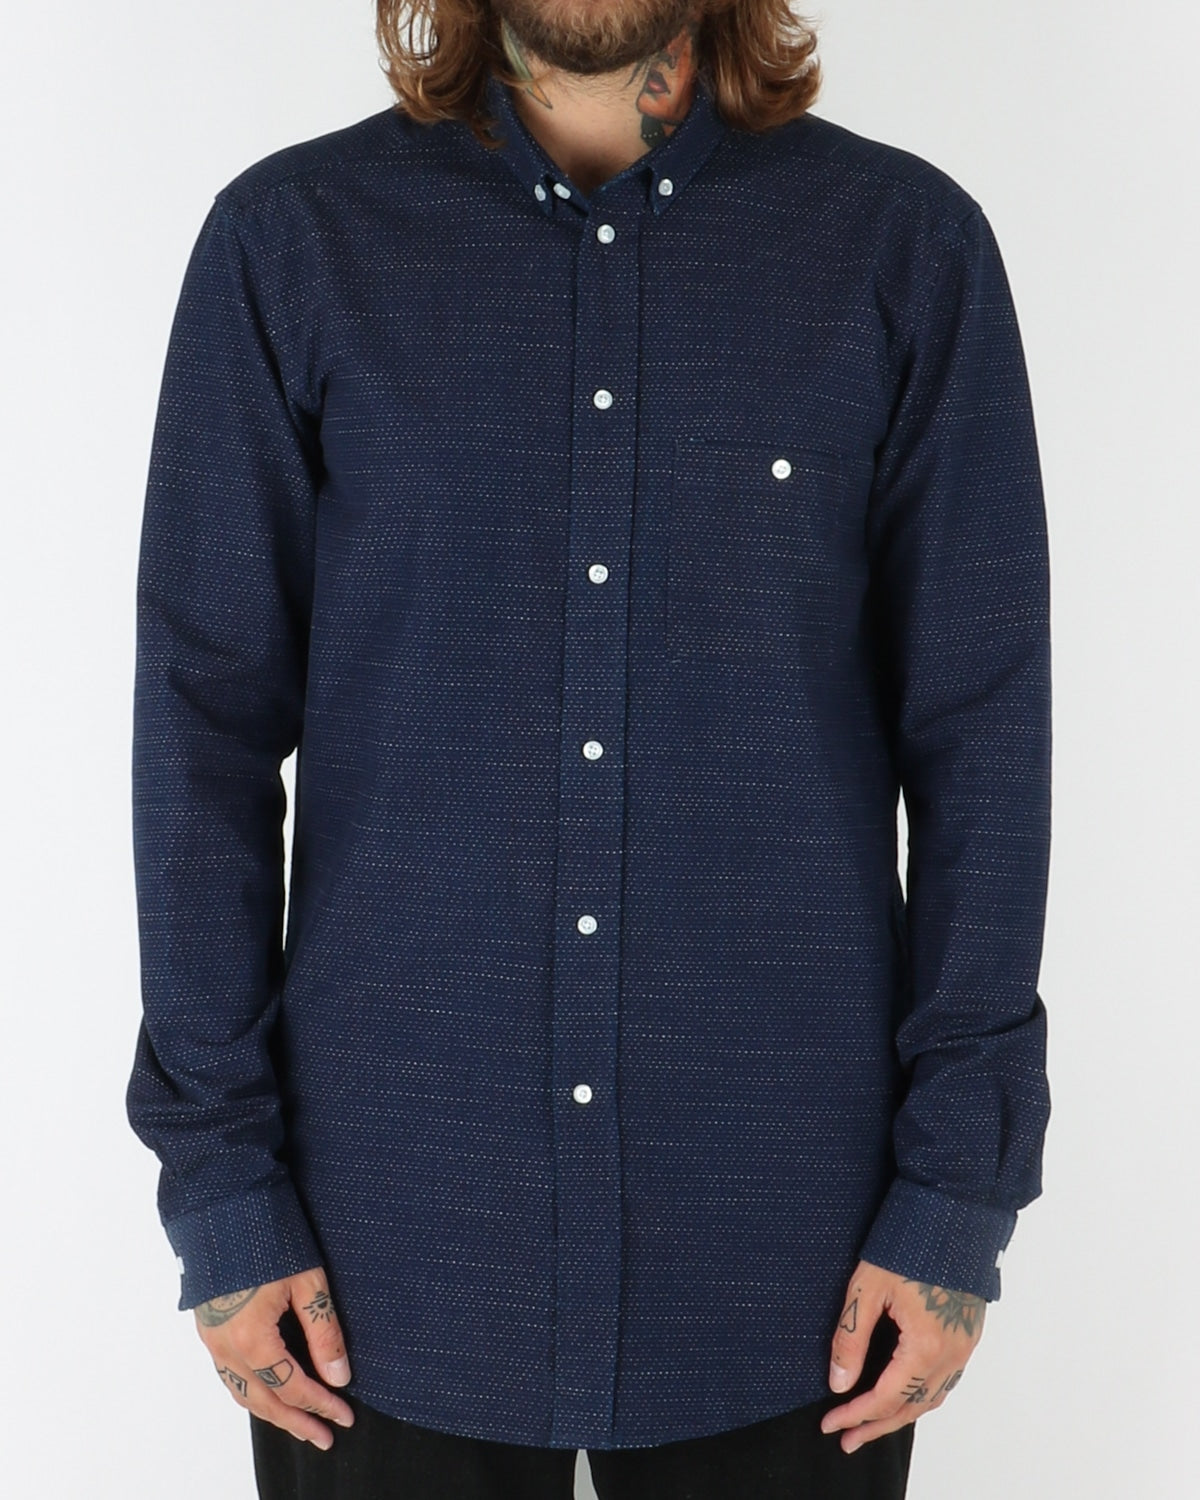 journal_clothing_grit jaq shirt_view_1_3